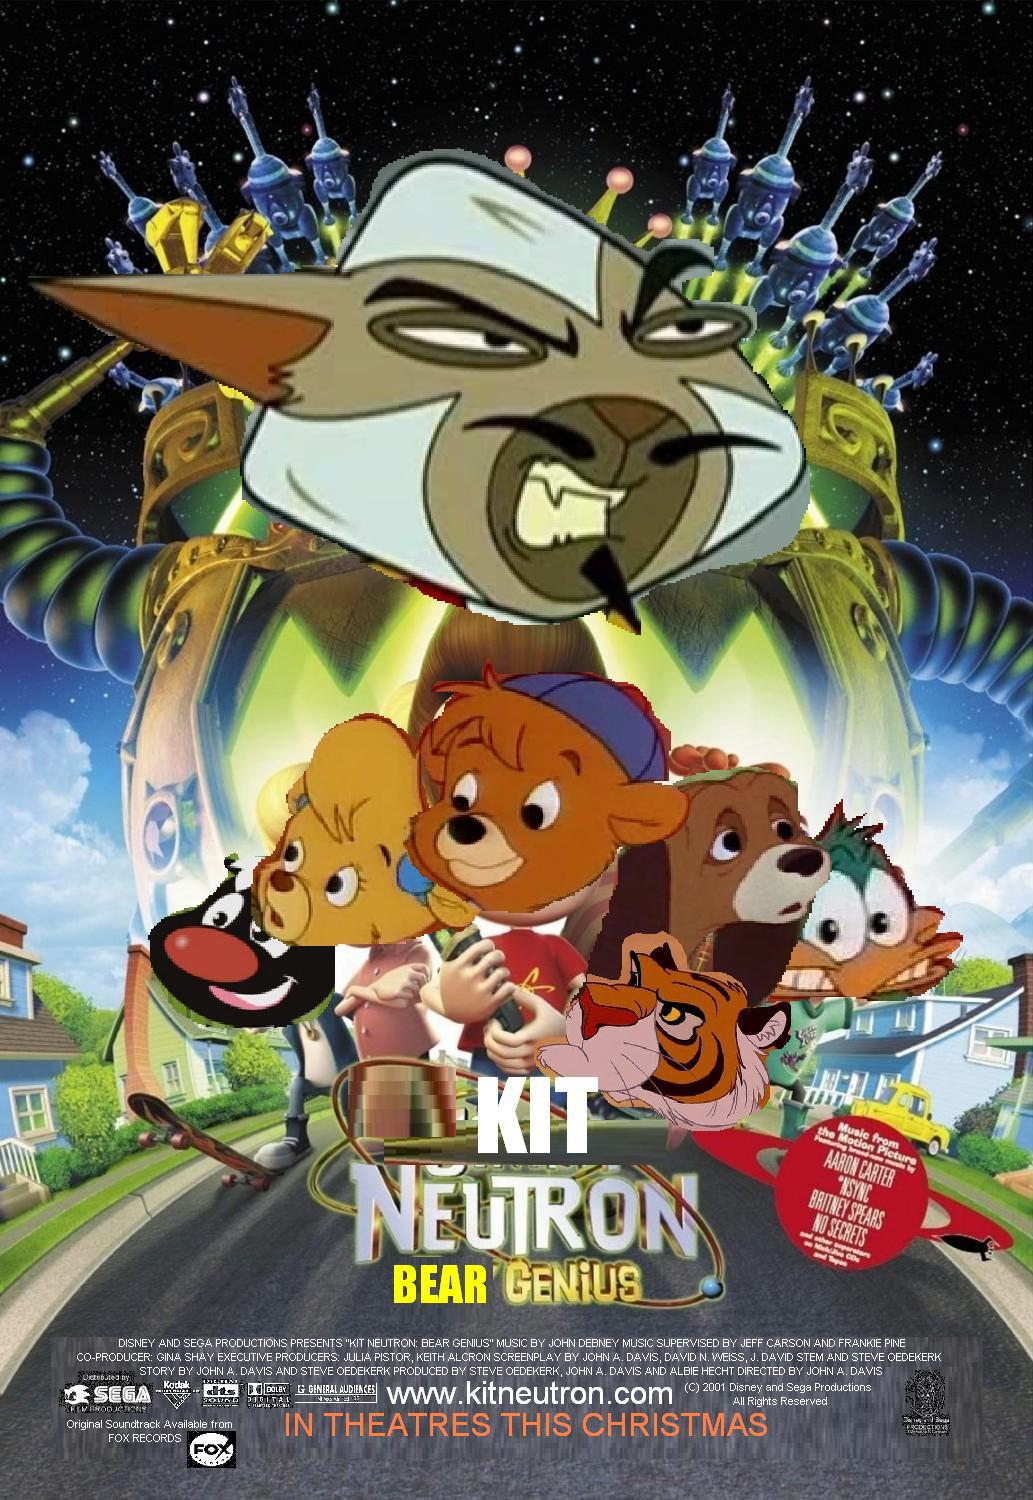 Kit Neutron: Bear Genius